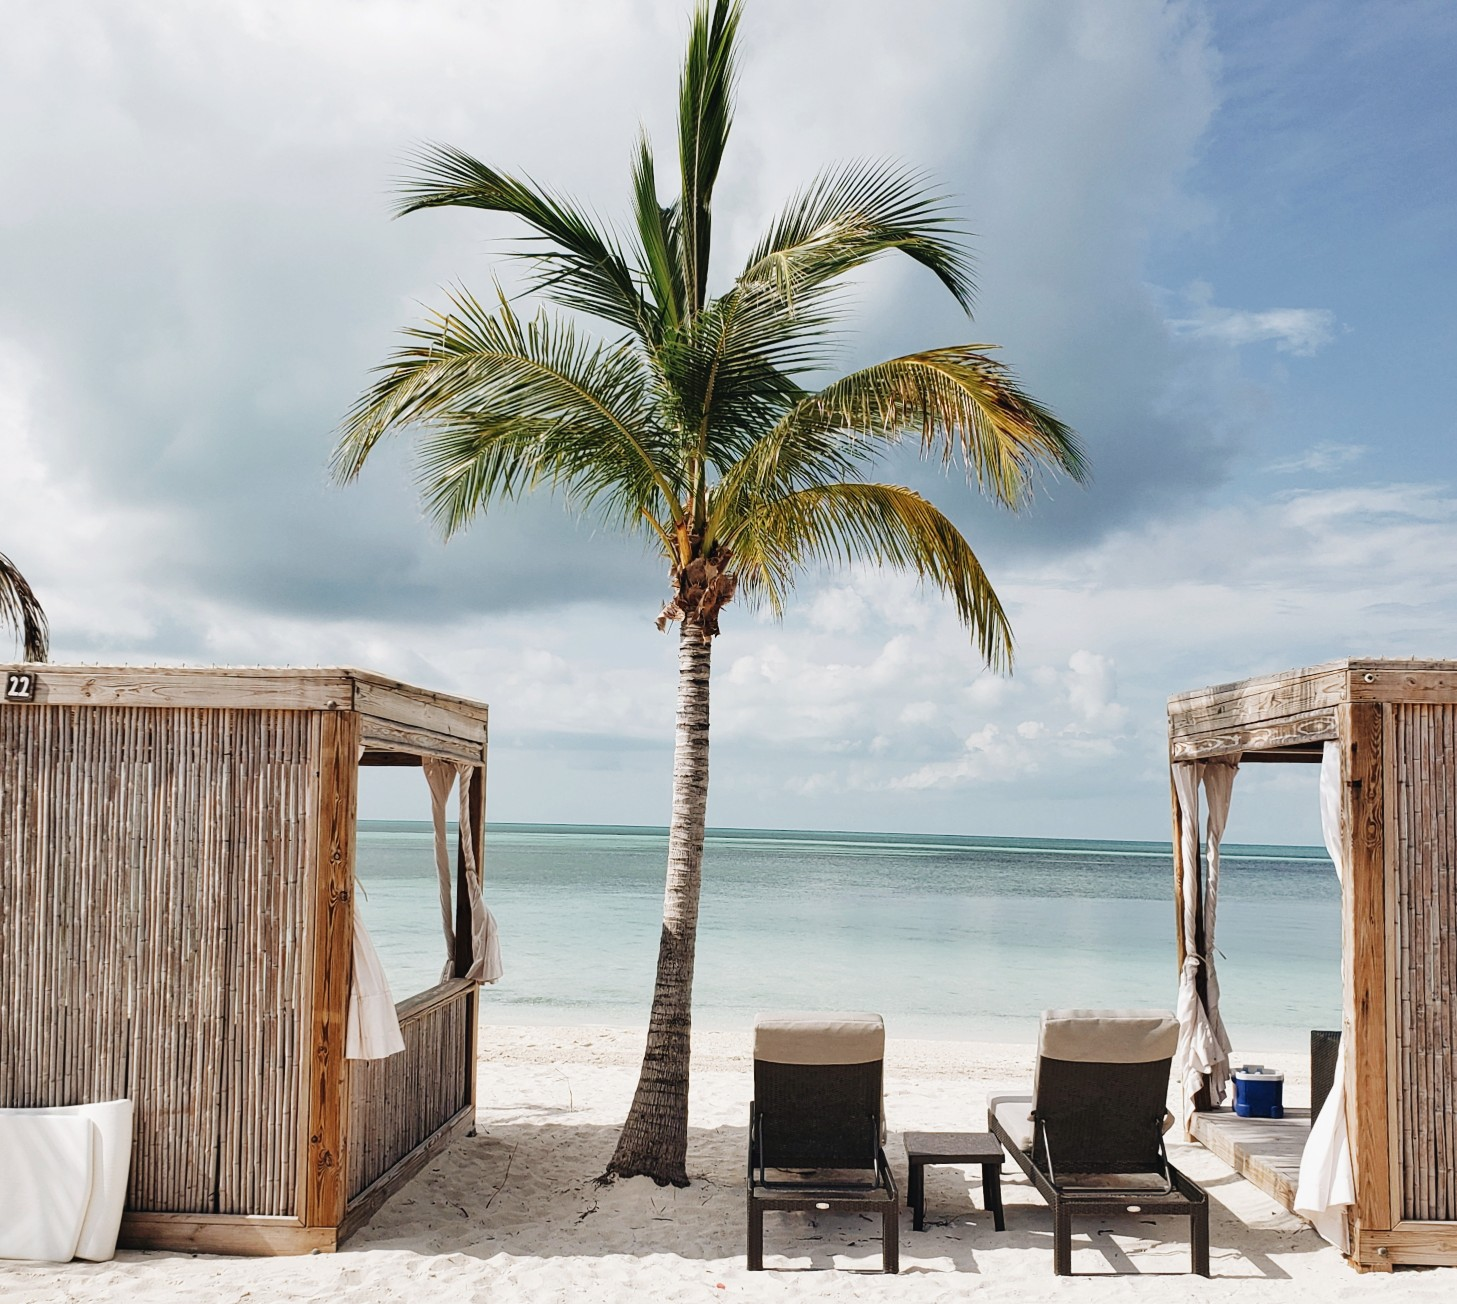 Cabanas in CocoCay Private Island